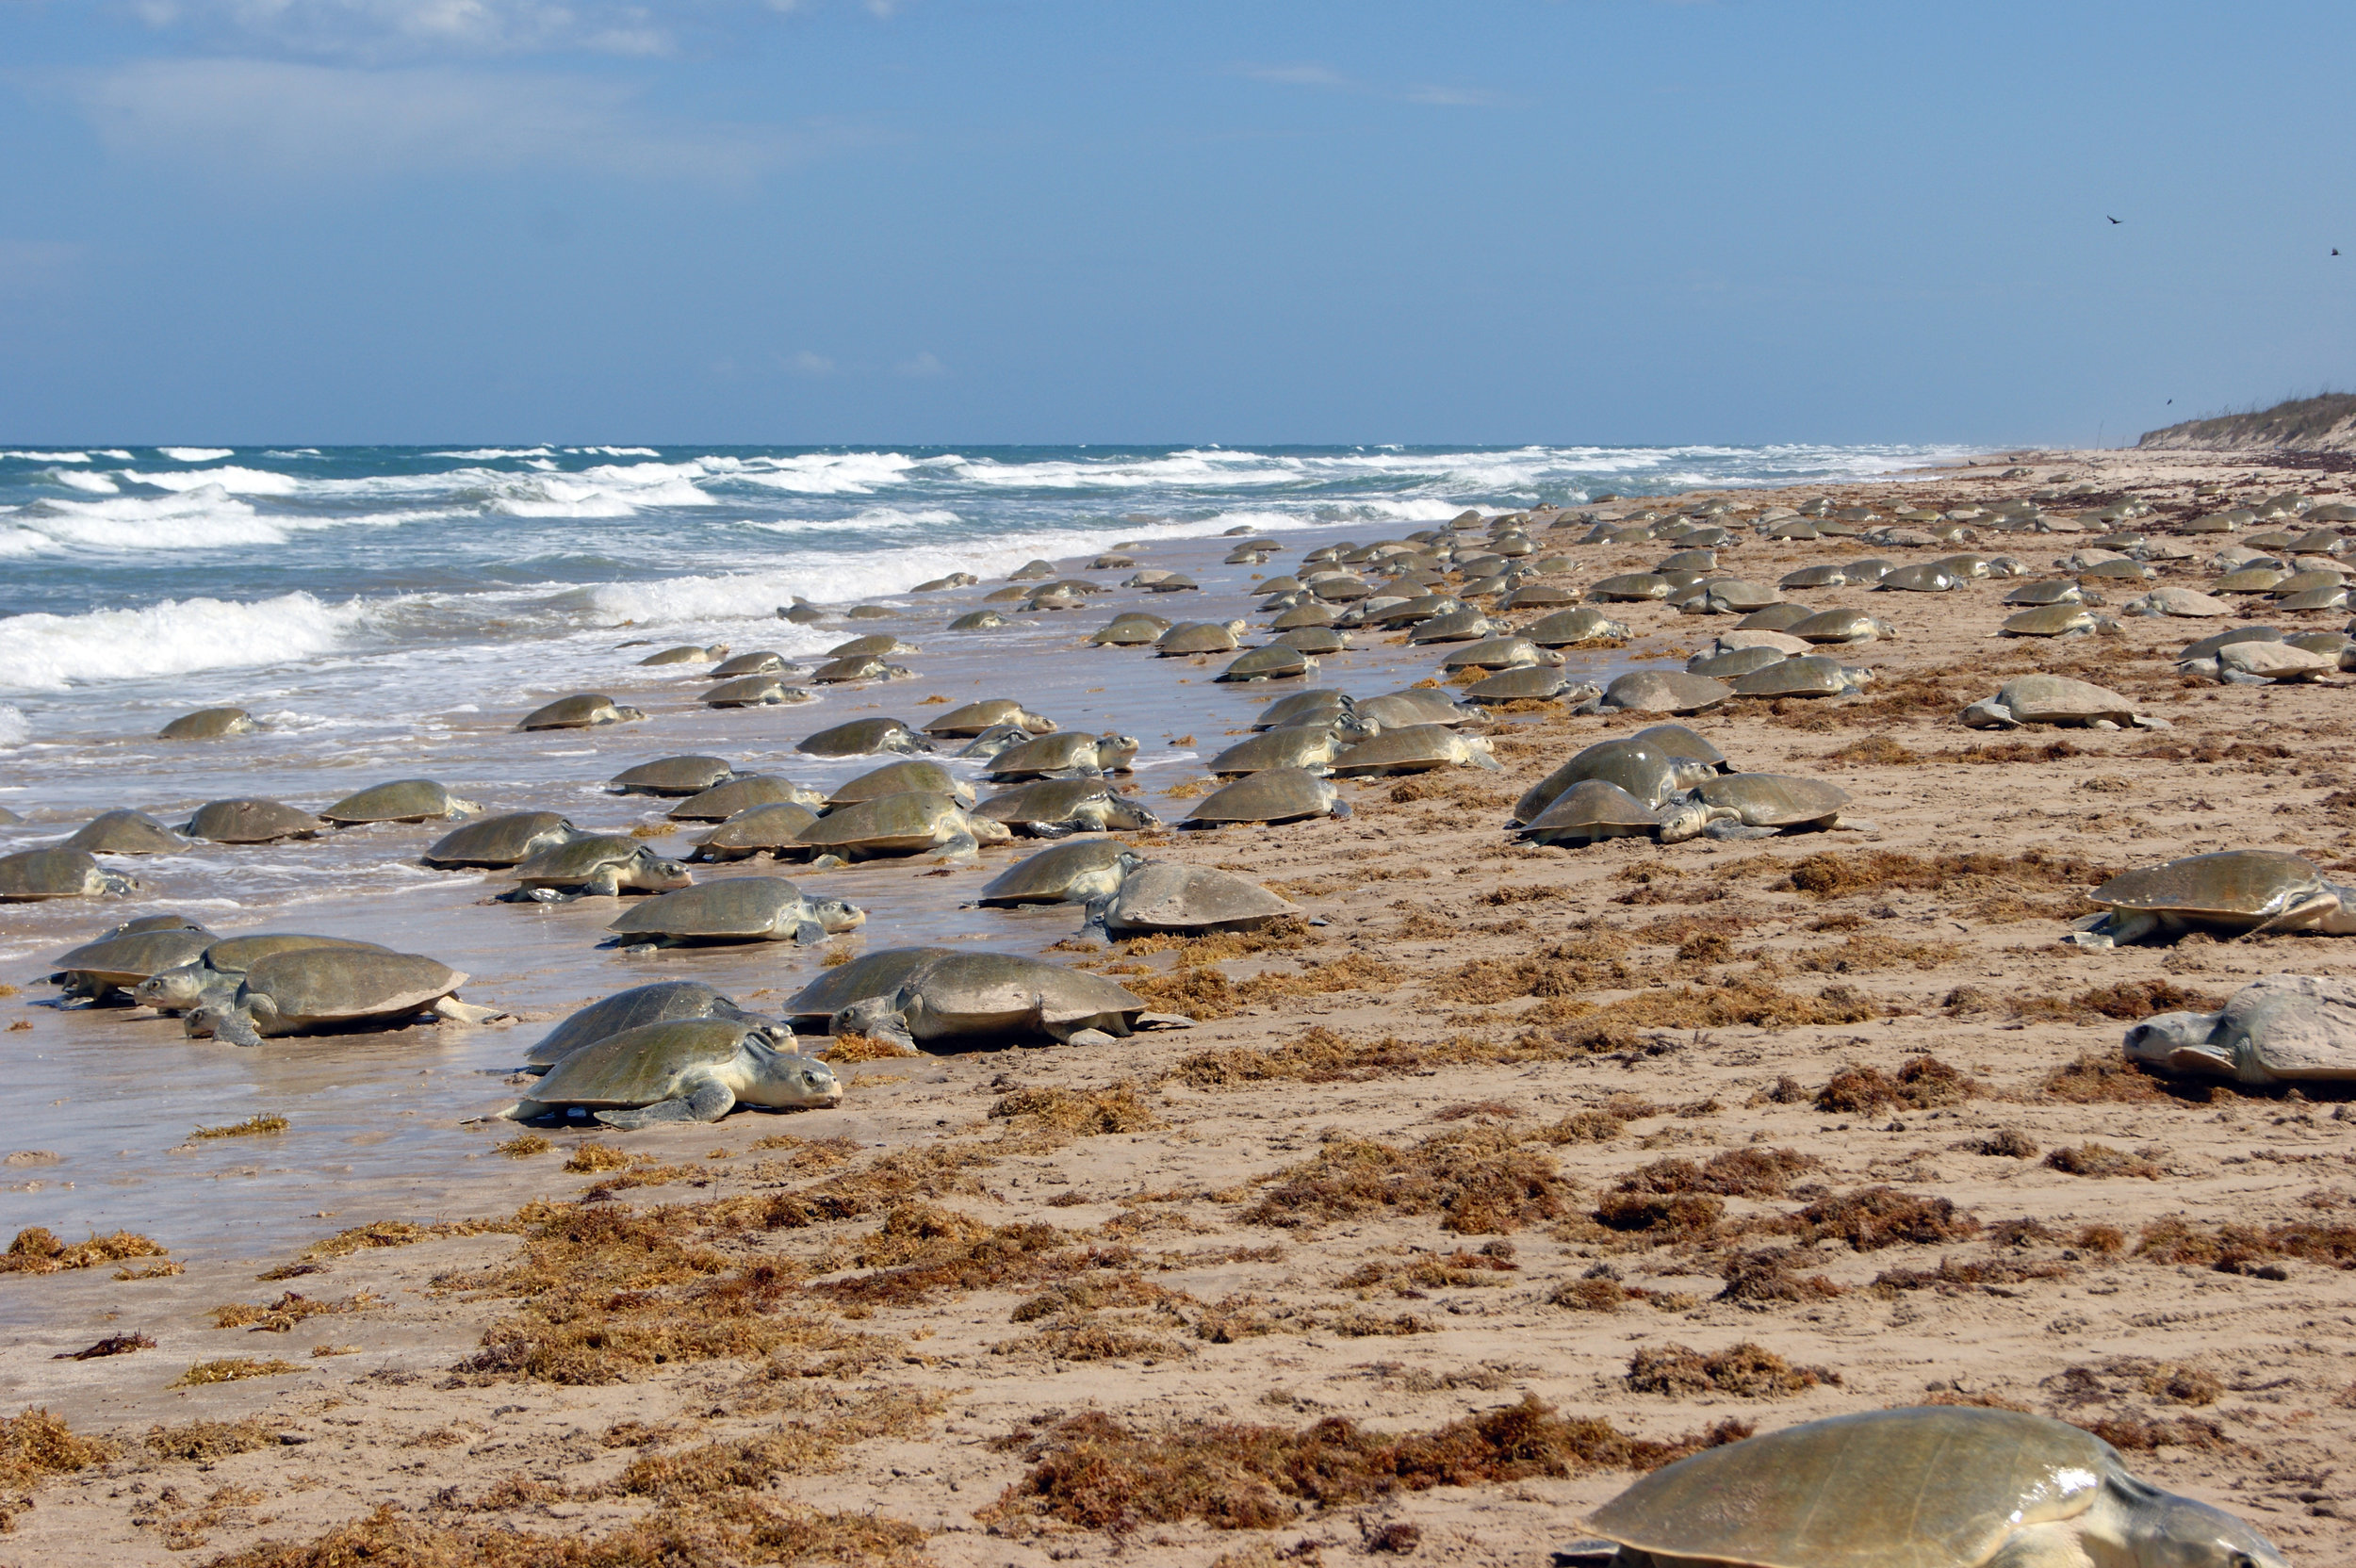 A large Kemp's ridley arribada in 2011 at Rancho Nuevo, Tamaulipas, Mexico is an encouraging sign of slow but steady population growth for this species that was once at the verge of extinction. © Toni Torres